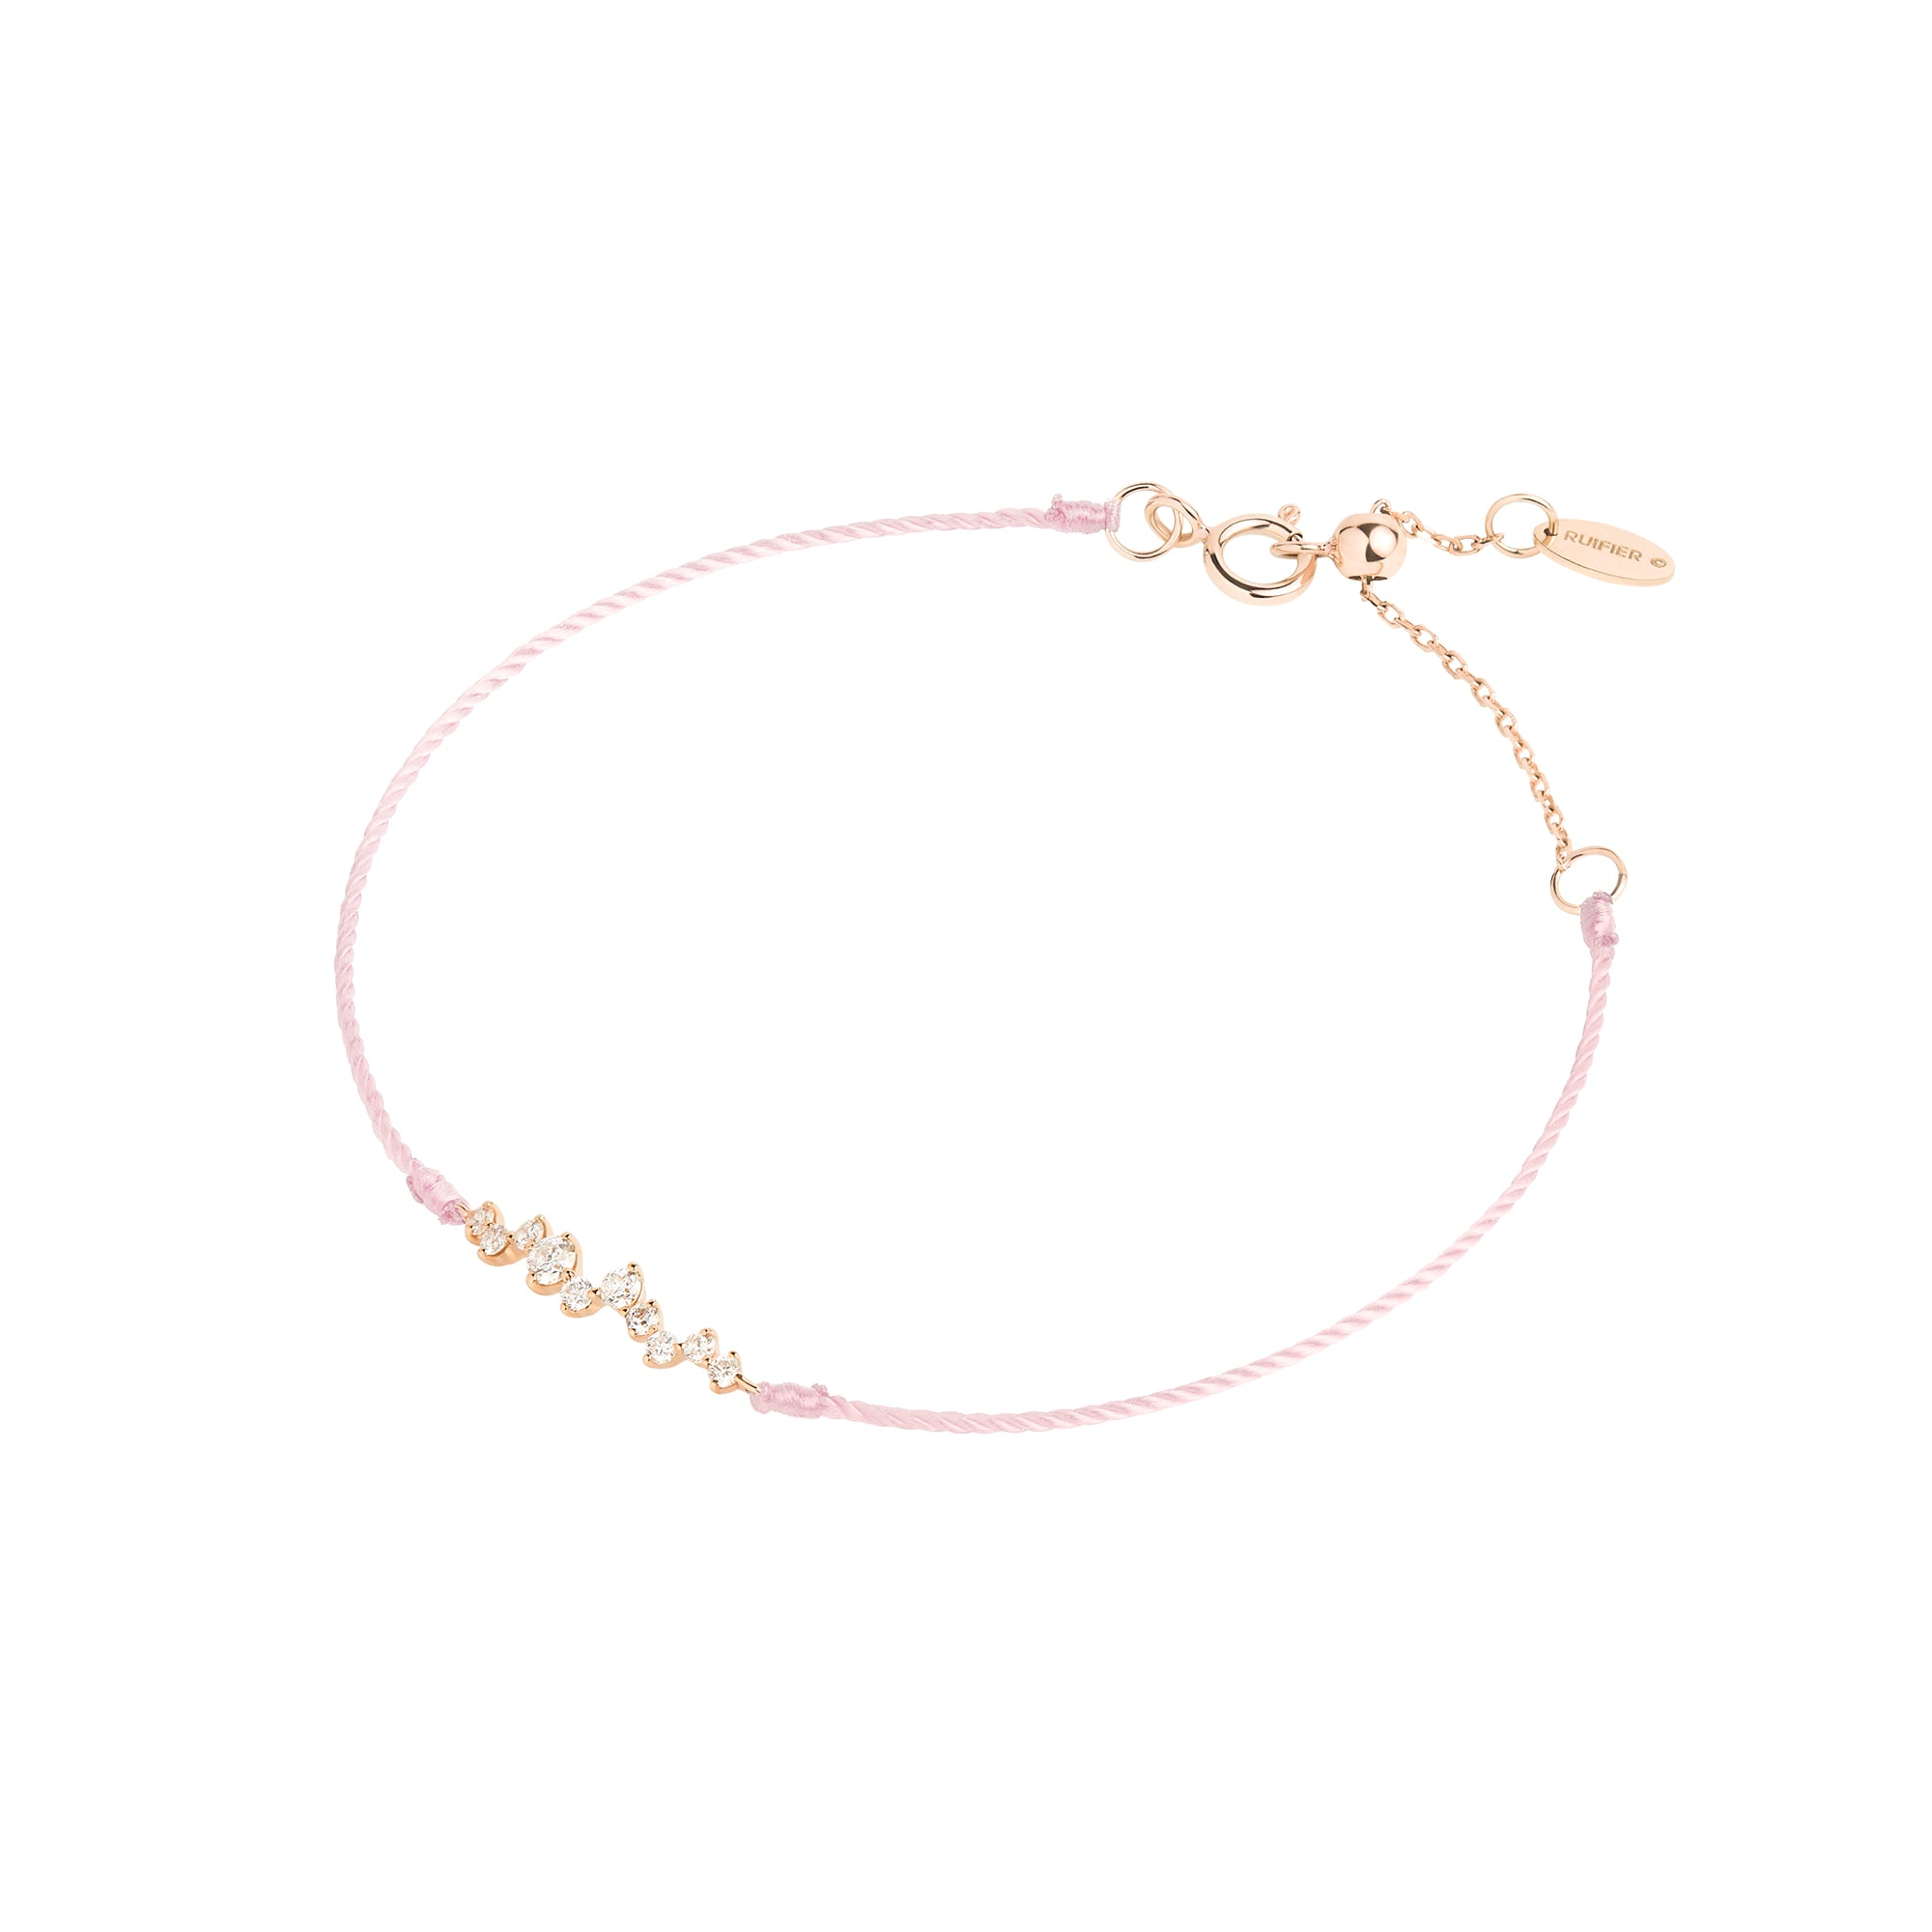 1HOME1 Scintilla Deca Ray Rose Bracelet - RUIFIER